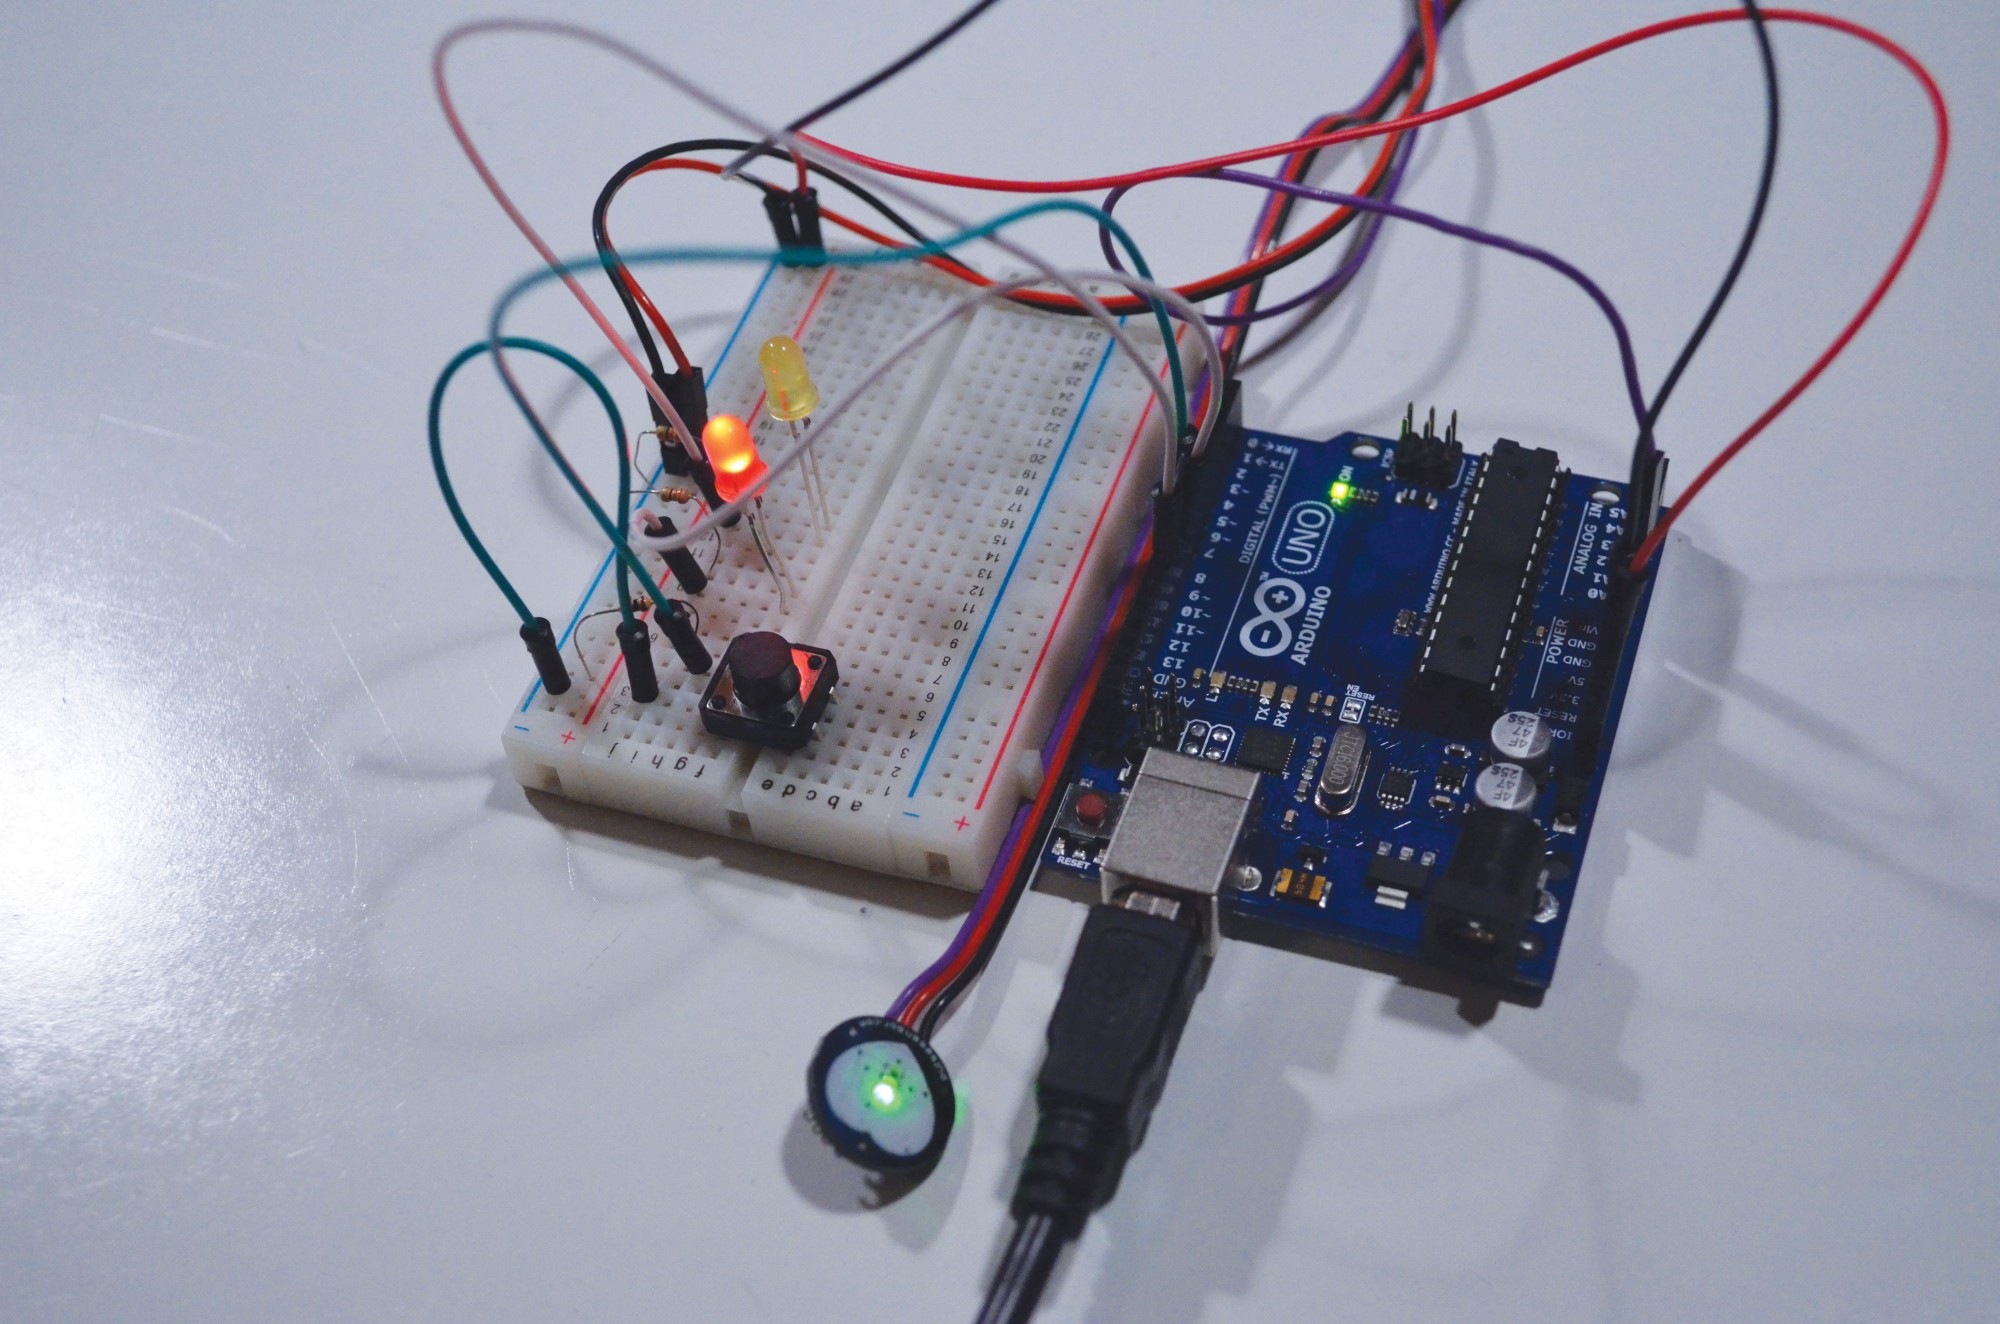 Updating New Software Can Bring Iot On A Higher Security Level Circuit Prototyping